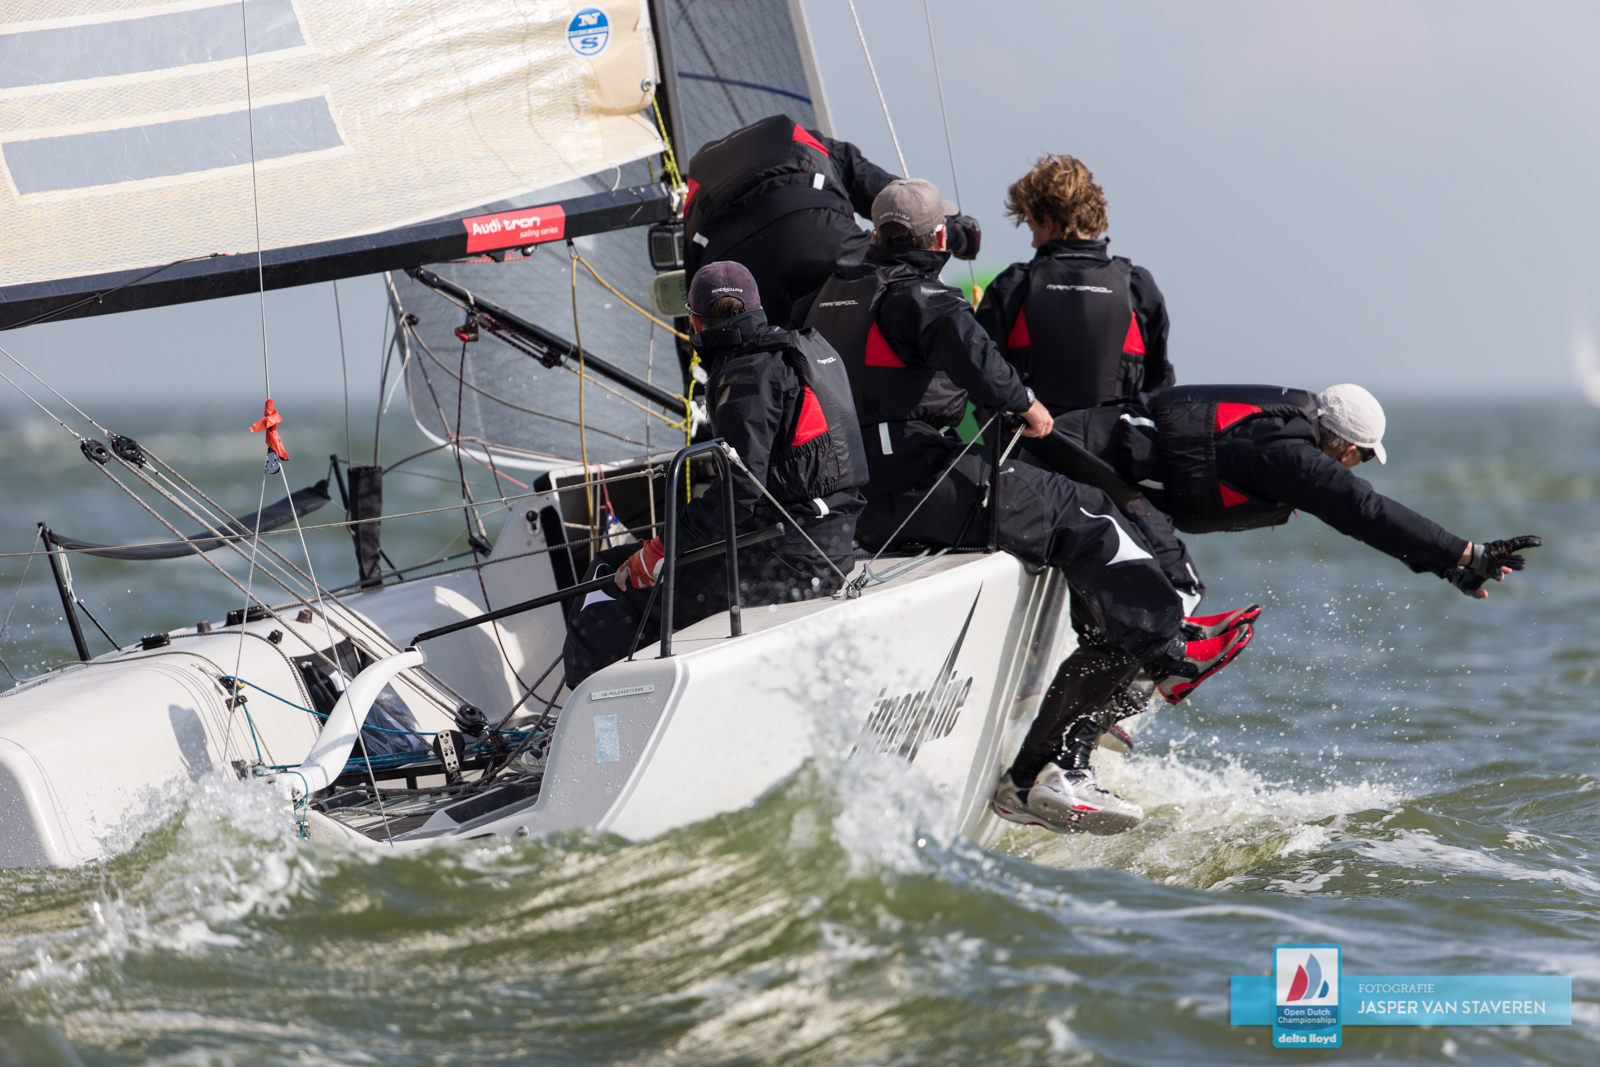 David Rowen's Imagine GBR557 - photo Jasper van Staveren